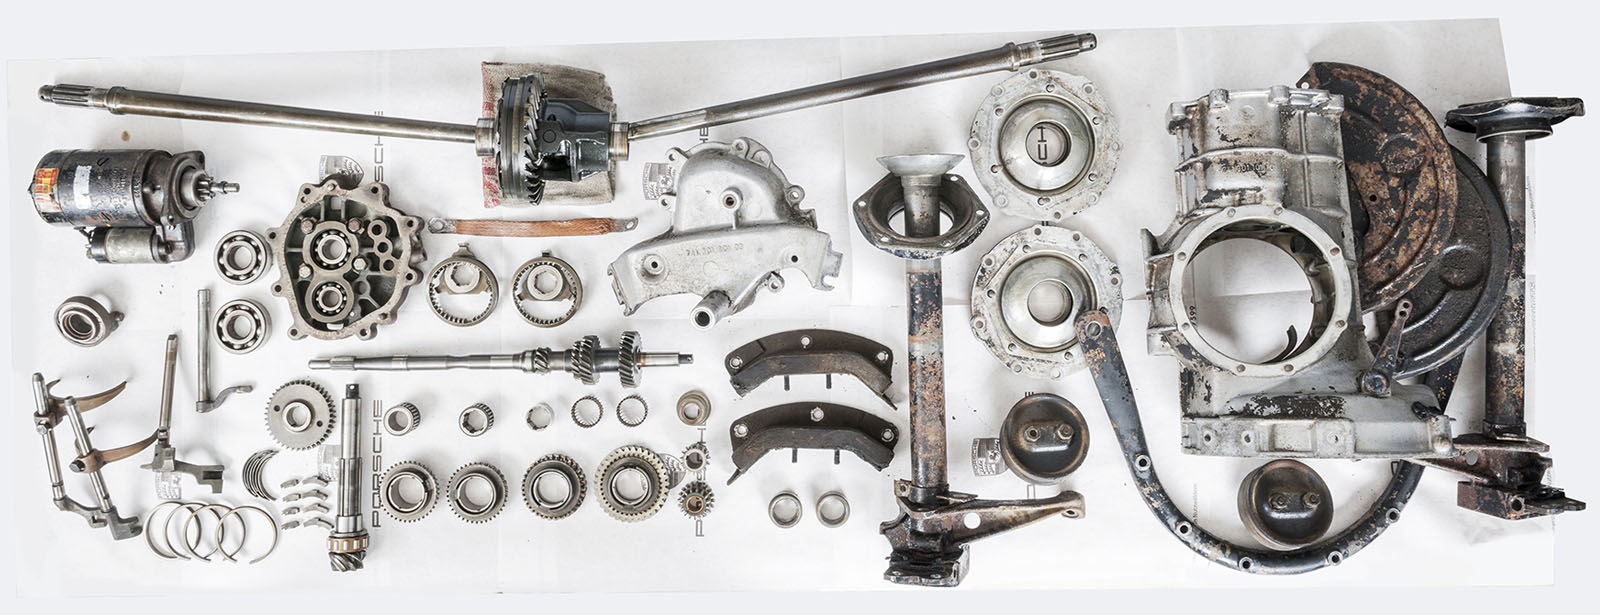 Porsche - Transmission - Disassembly